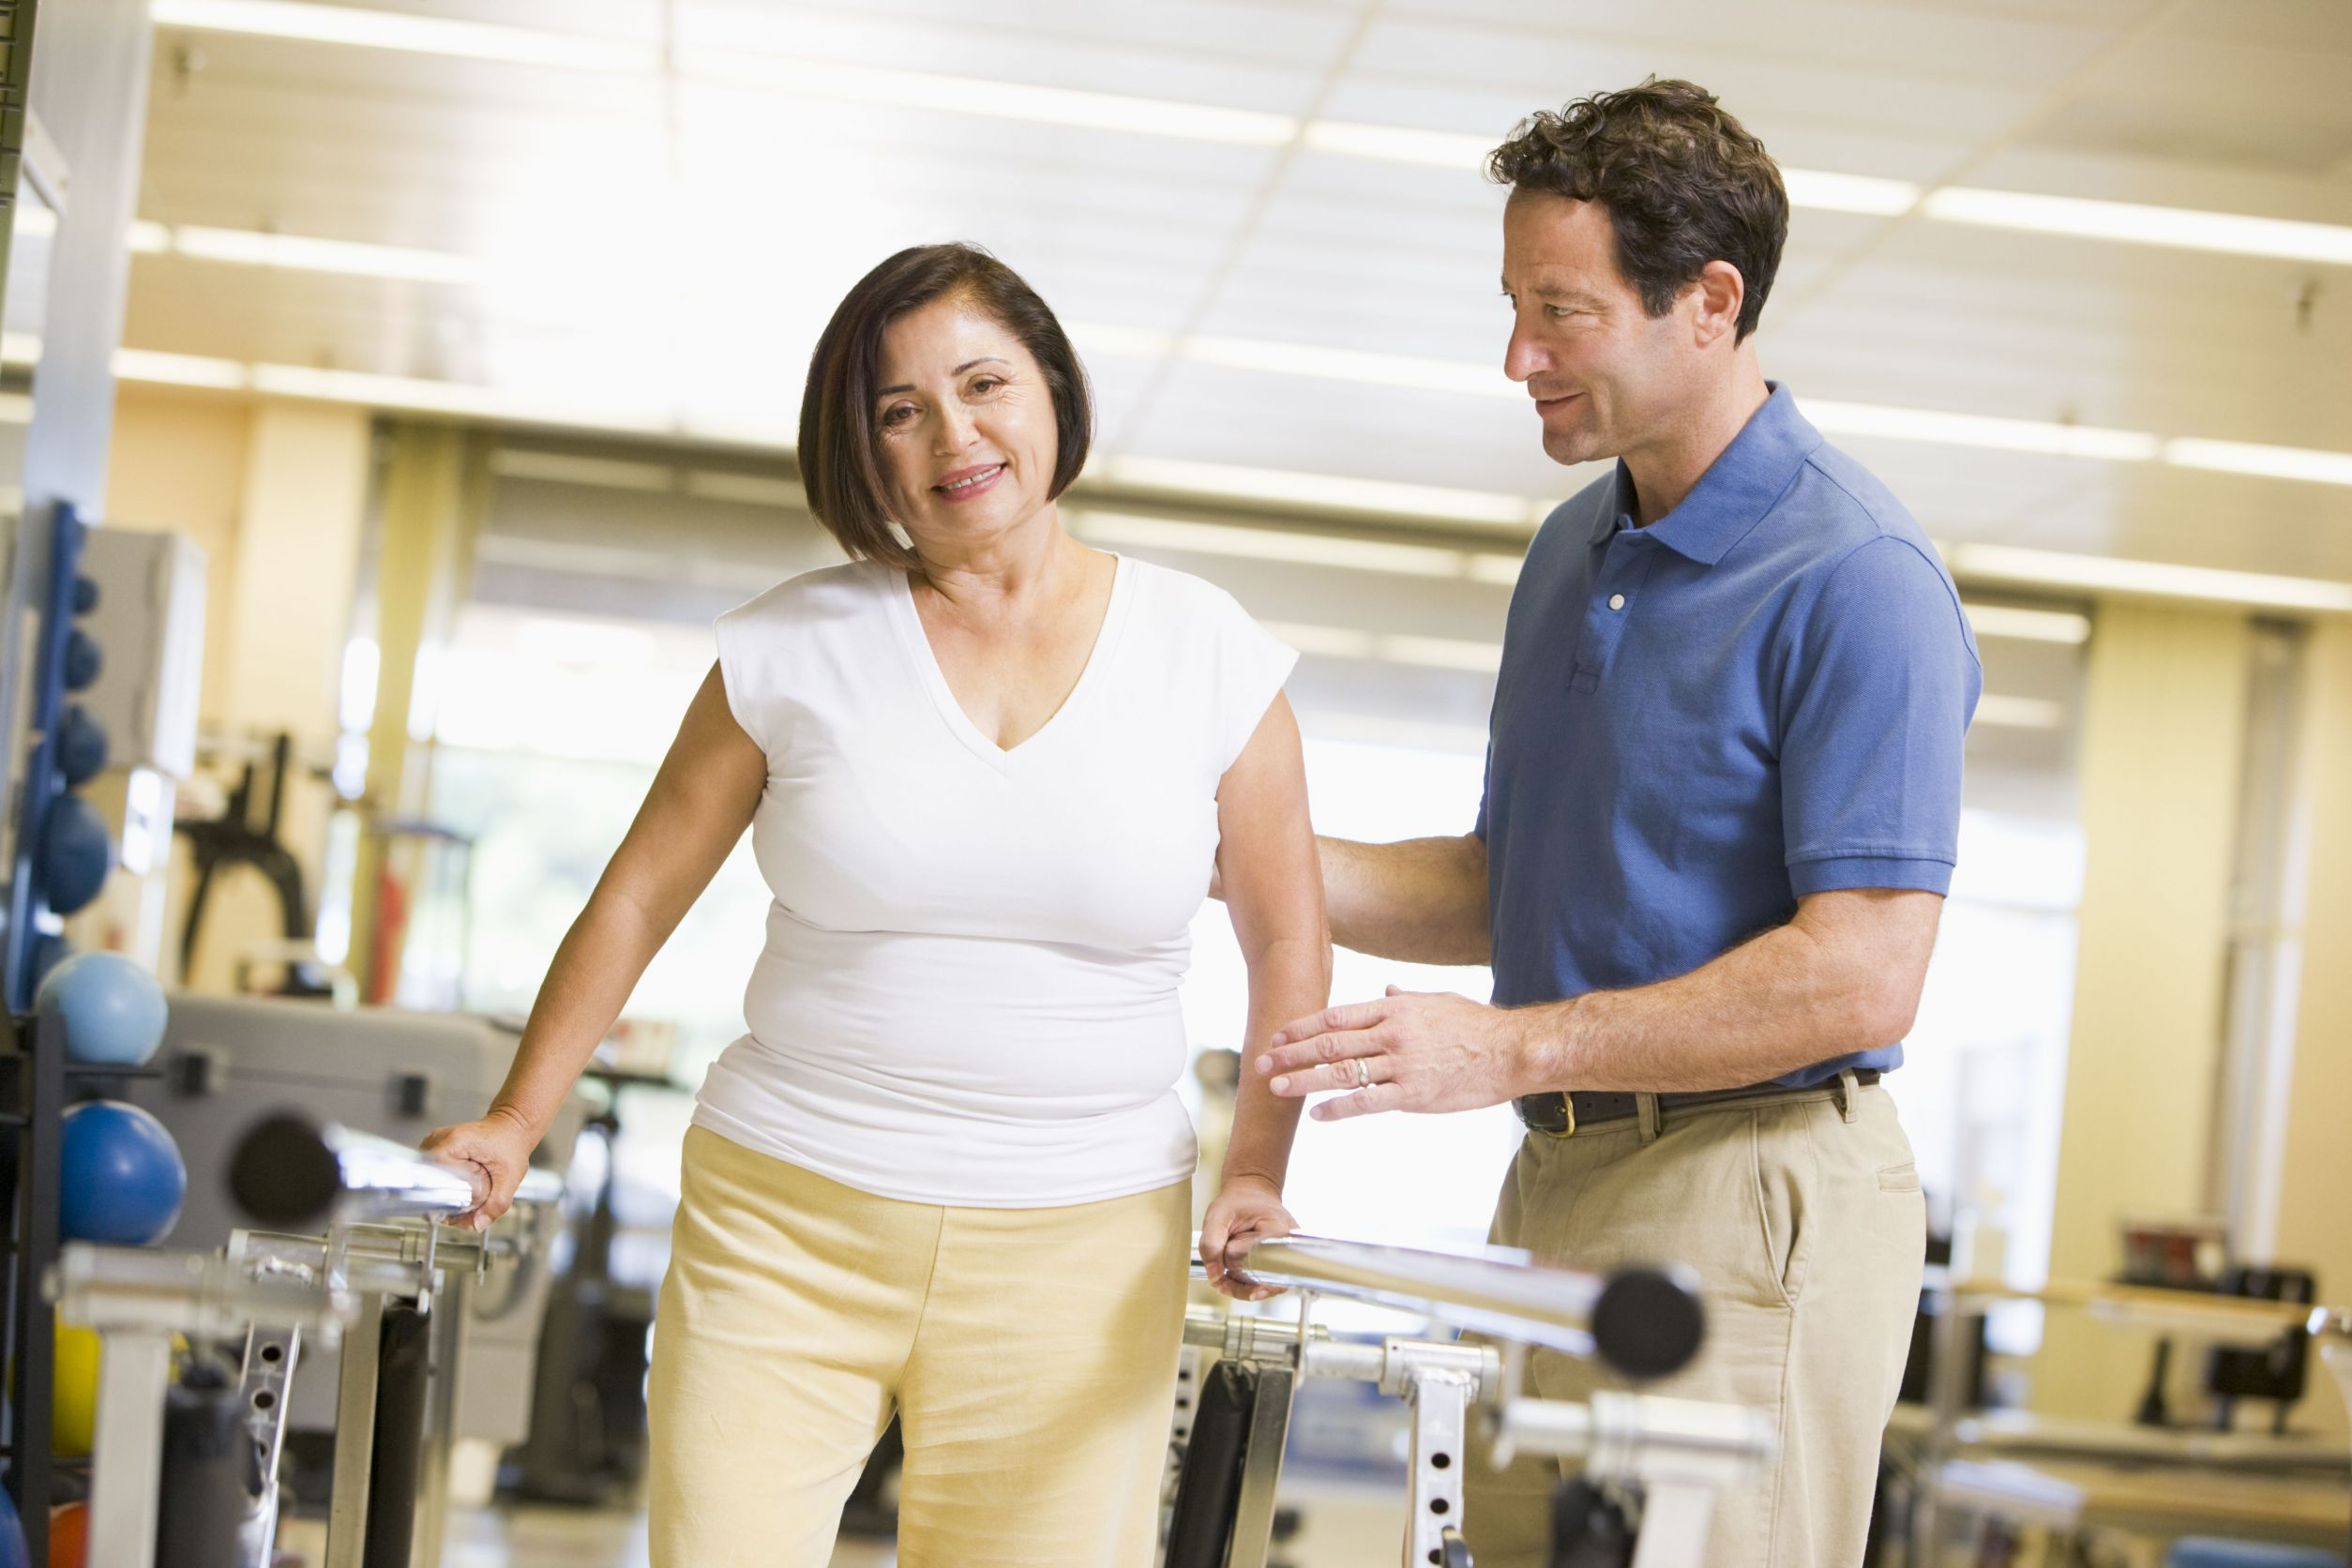 Physical Therapy Services In The Denver Metro Area